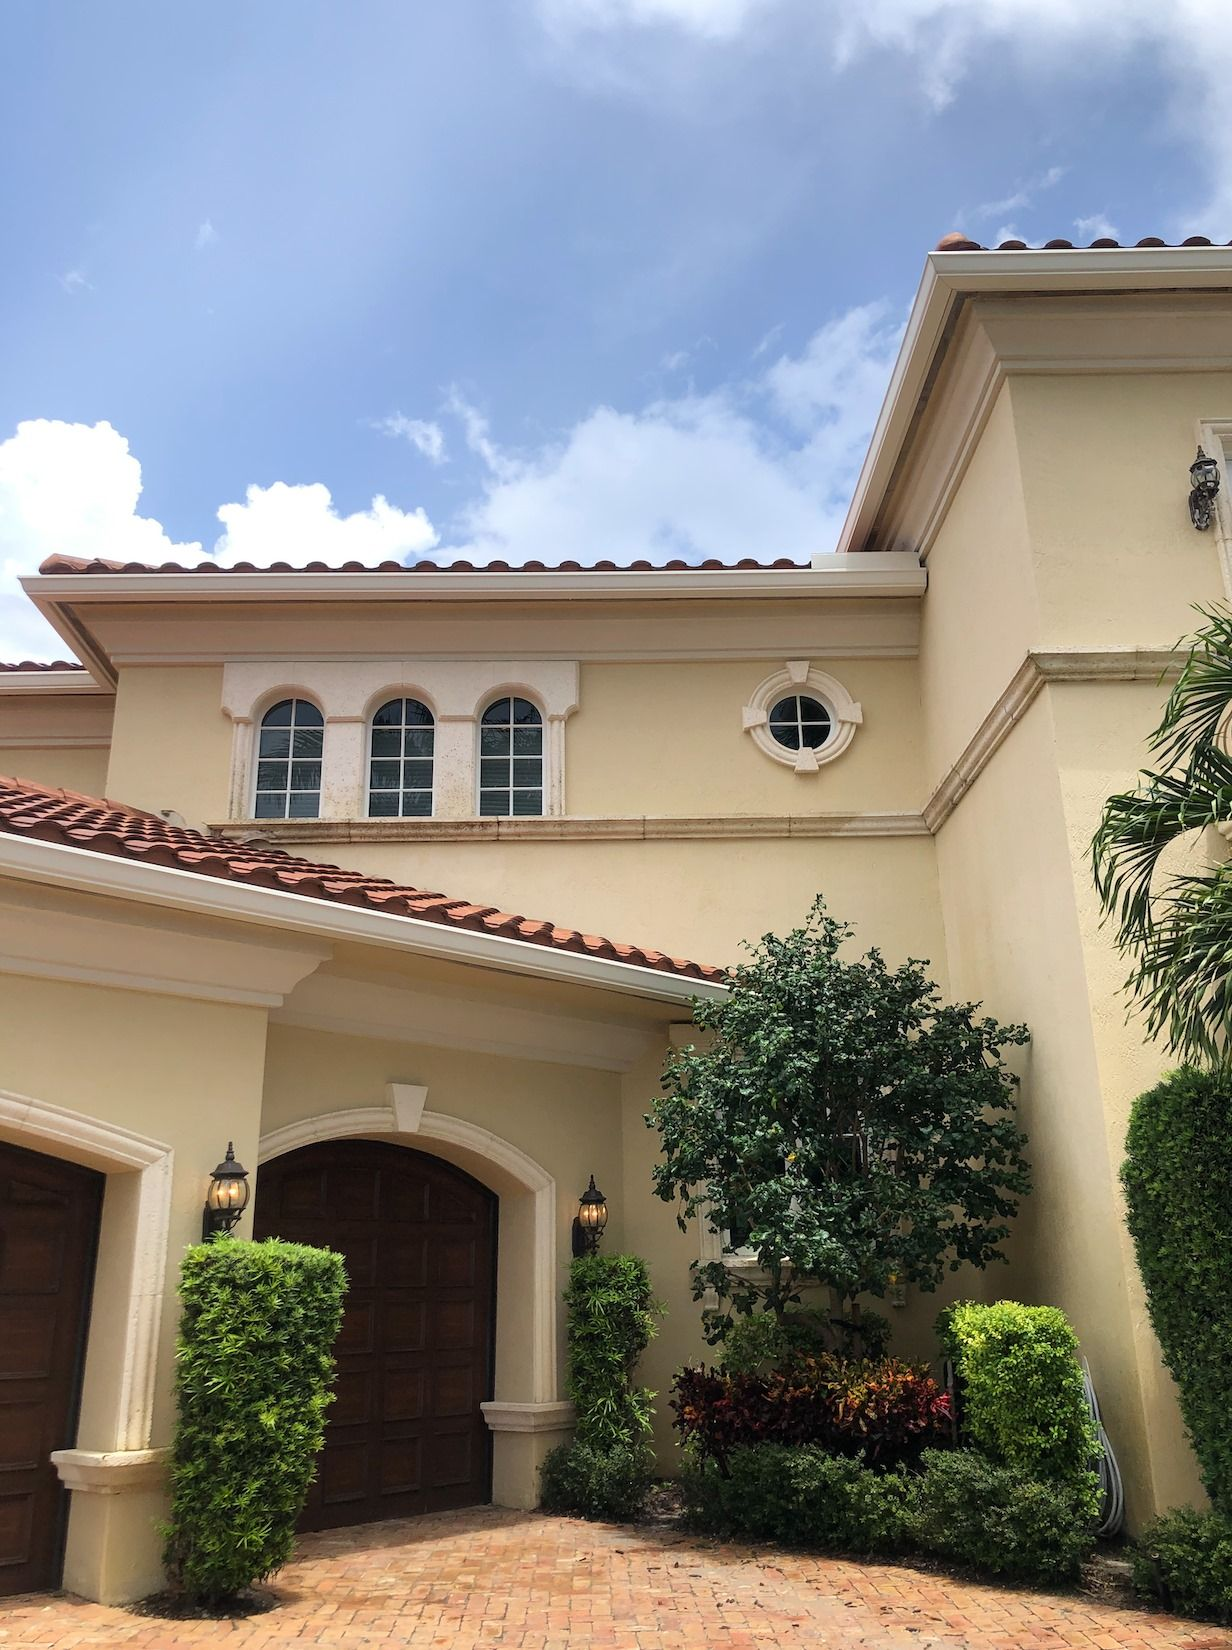 Water, wind and sunlight can wreak havoc on your roof. Often, executing a few simple repairs can prolong the life of your roof. Already leaking? Contact us and we will help. #RepublicRoofing #Roofers #RoofRepairs #Experience #LicensedandInsured #SoFlo #SouthFlorida #Miami #MiamiDade #Hollywood #PalmBeach #WestPalmBeach #Fortladuerdale